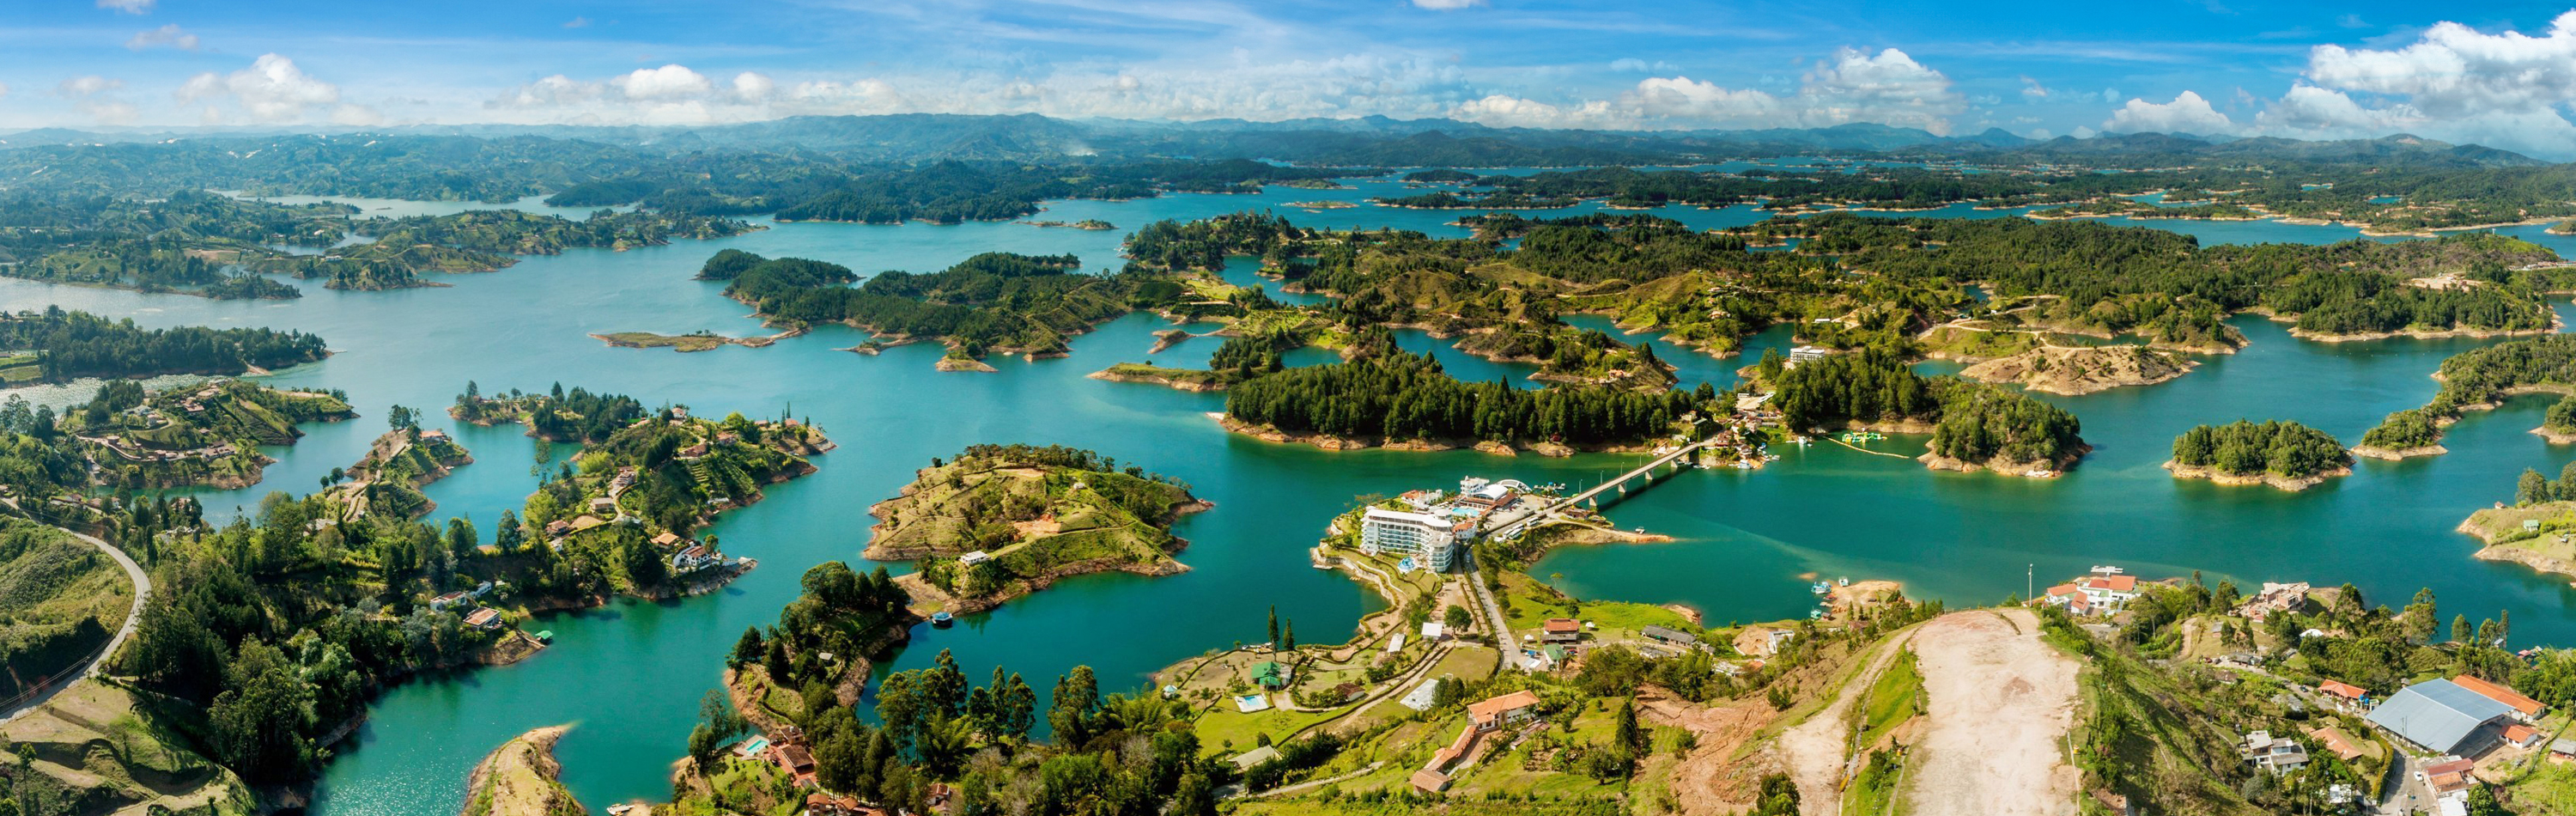 Colombia Tour - Stunning landscape in Guatape